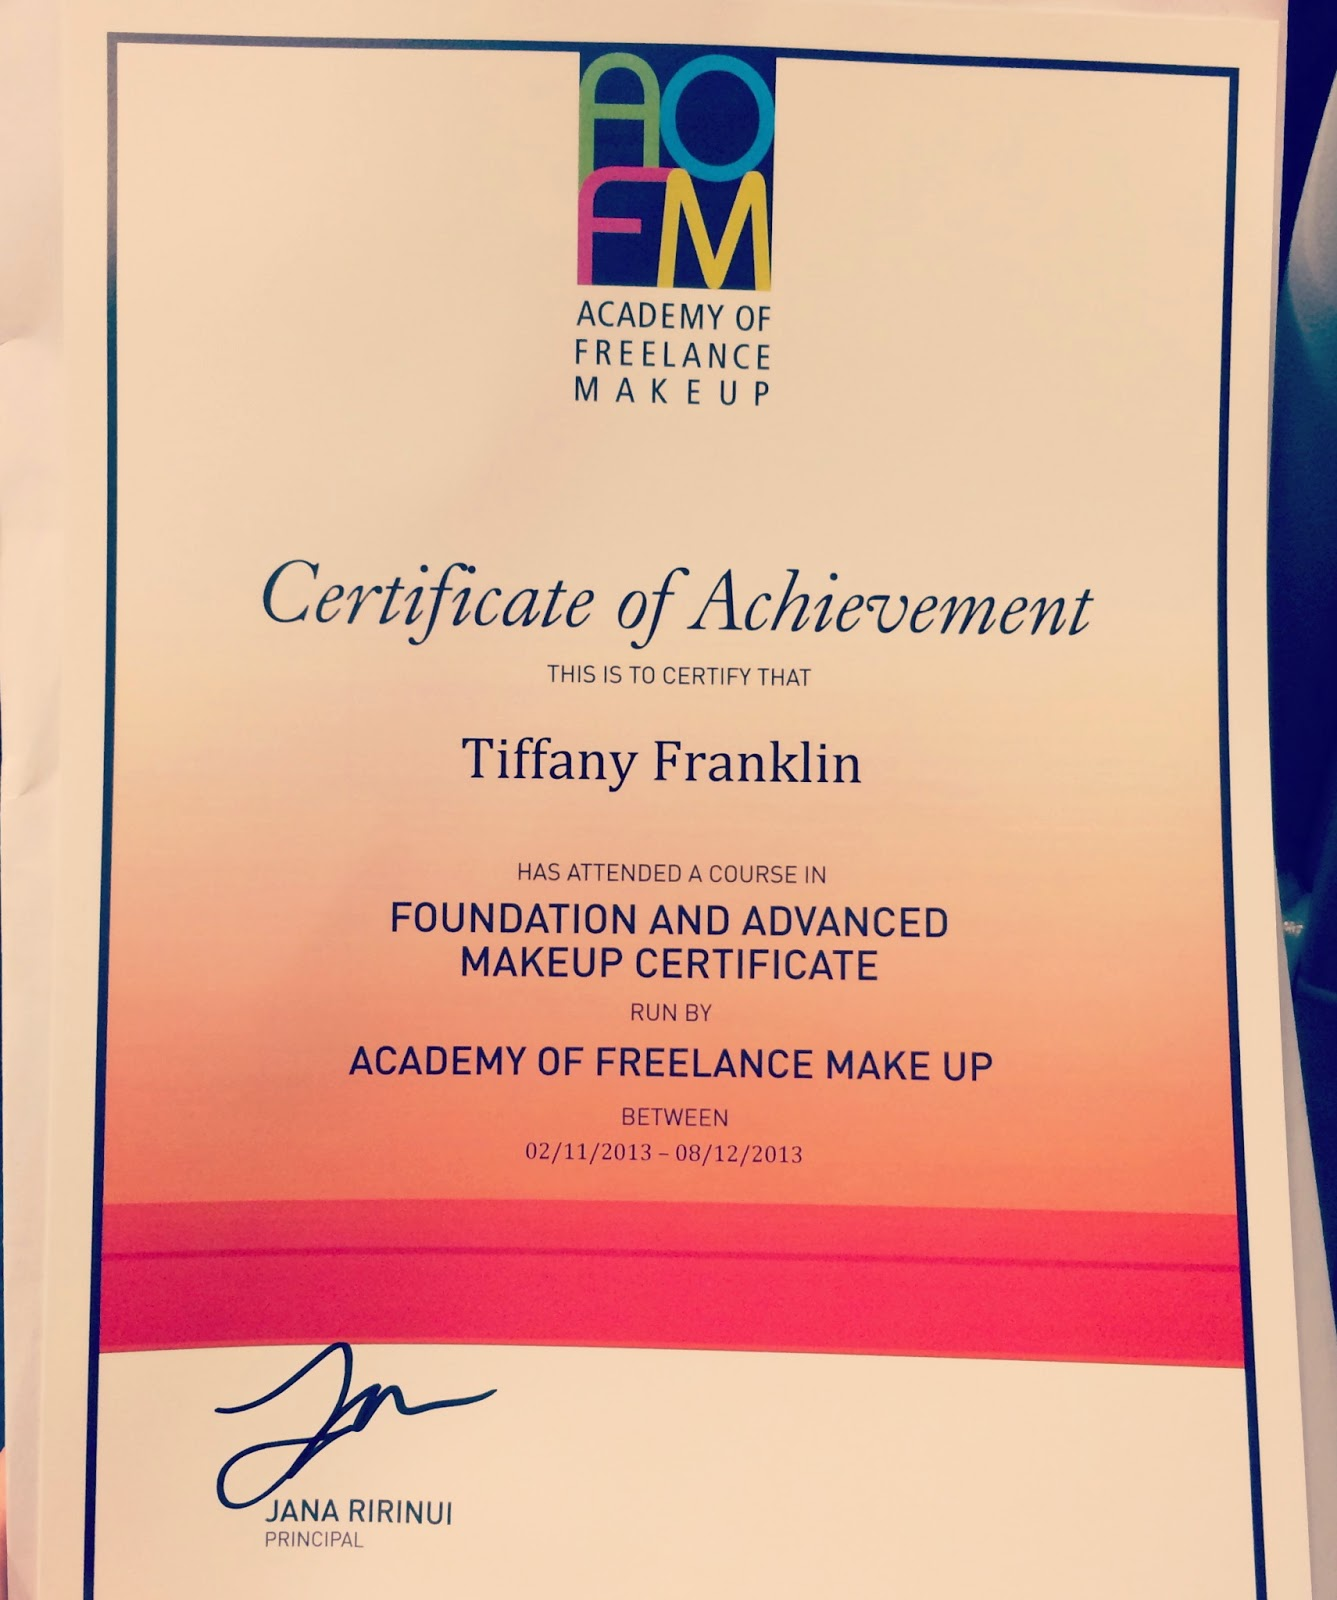 Tiffanysbeautybox Training To Become A Make Up Artist At Aofm London Masters Certificate In Professional Artistry